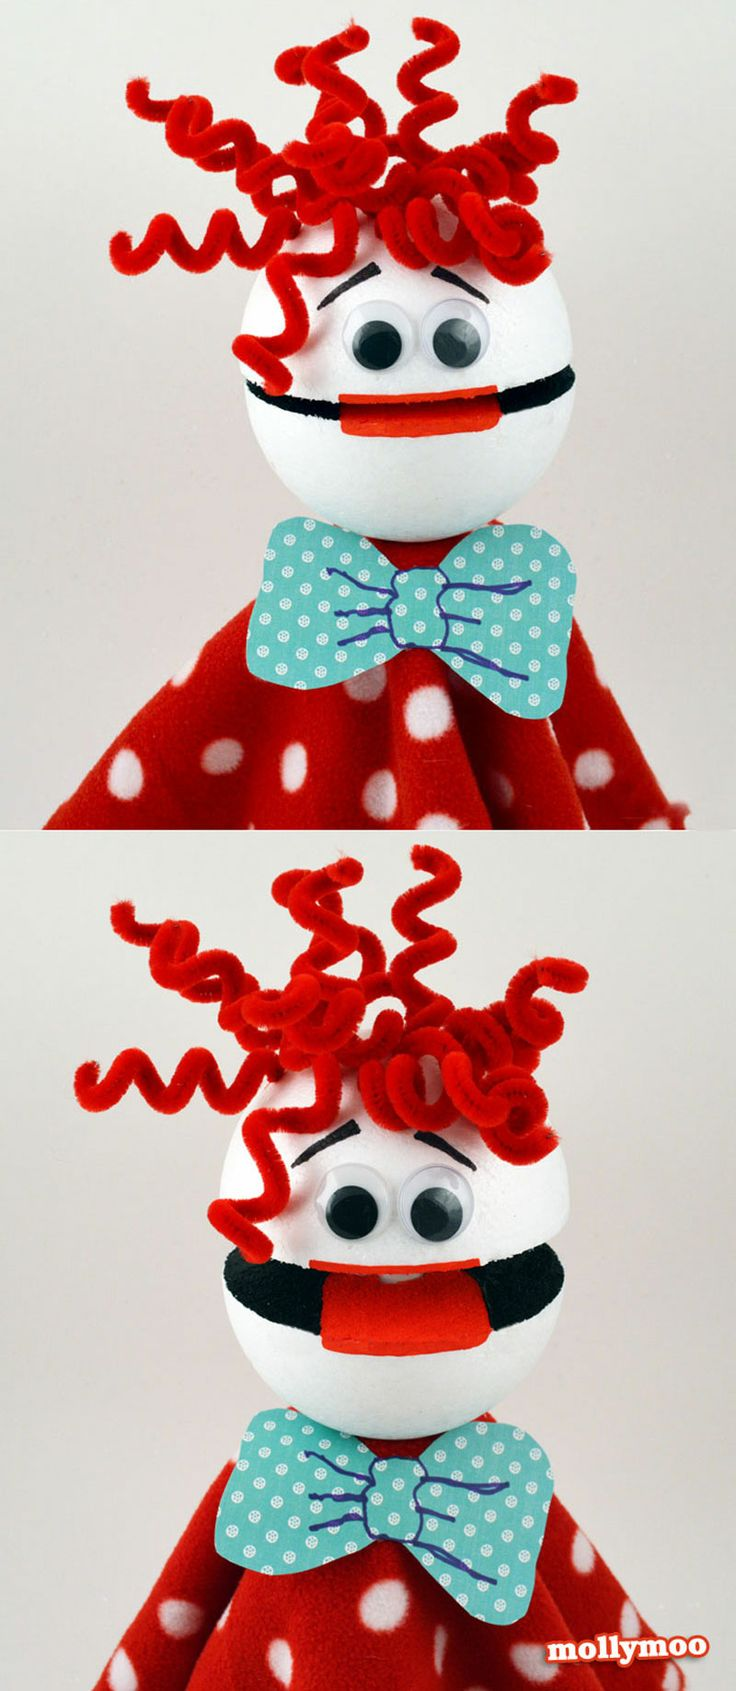 How to Make Talking Puppets  | MollyMoo #nosew #craftsforkids #kidscrafts